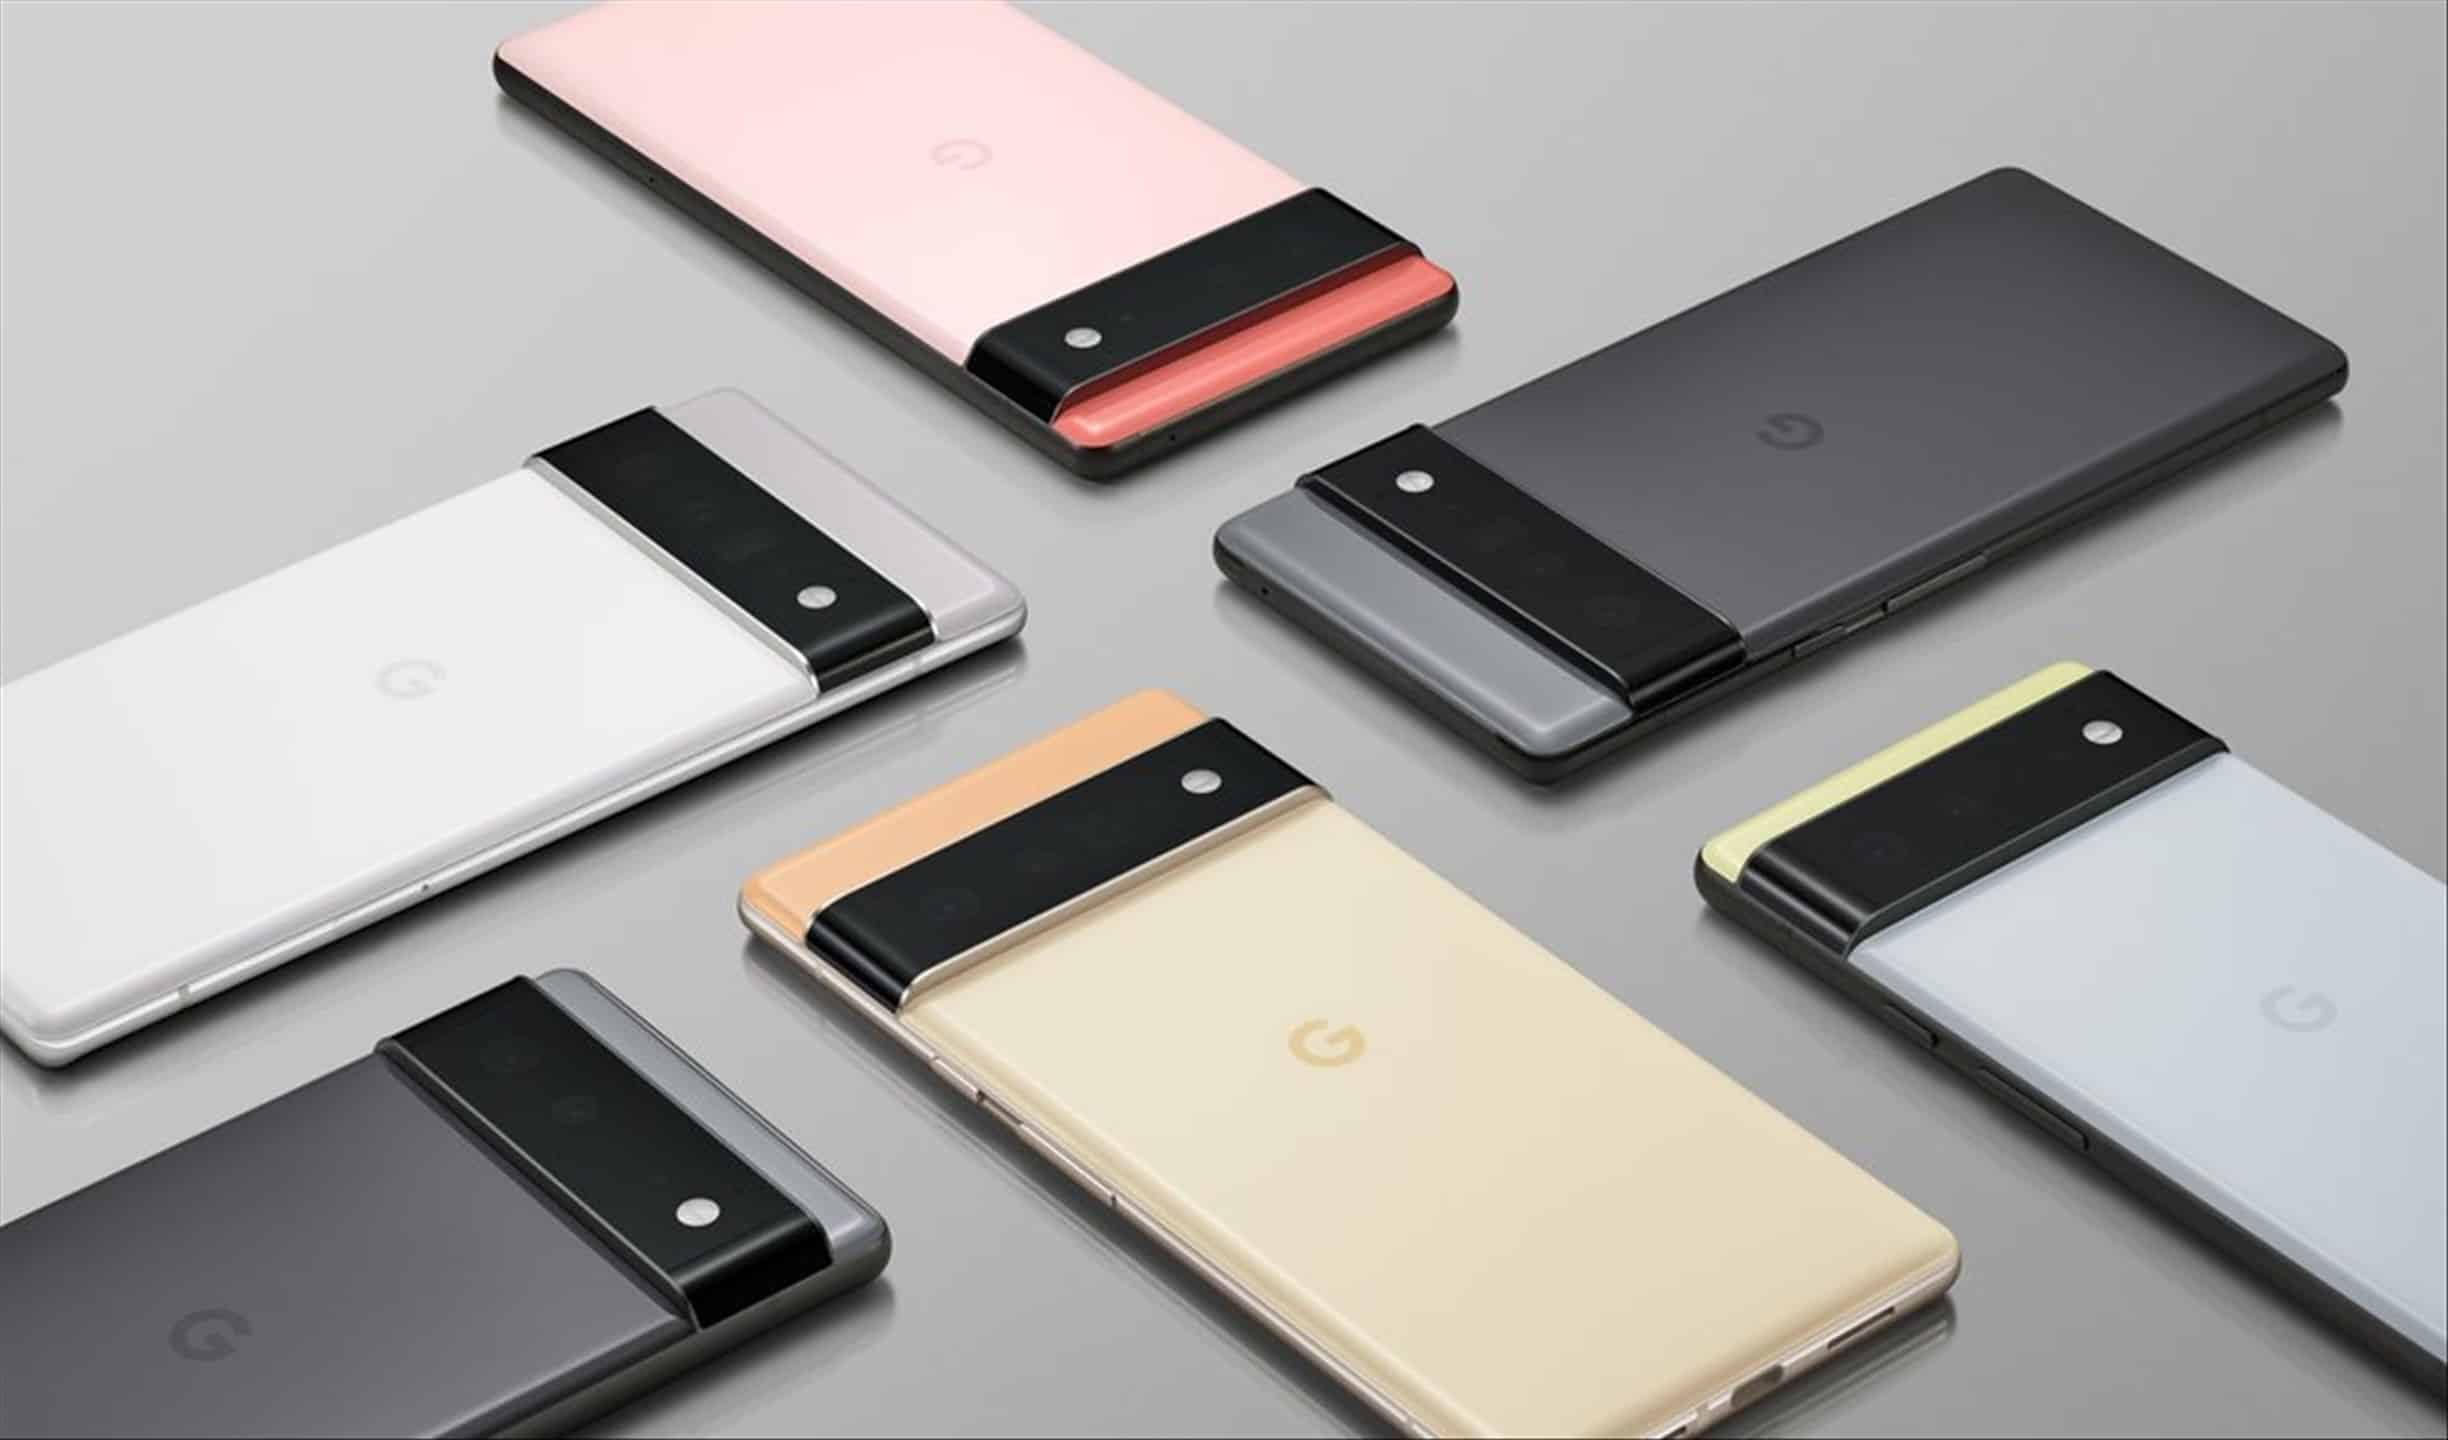 Google is featuring their custom-built chip specifically for Pixel phones, including the upcoming Google Pixel 6 & Pixel 6 Pro